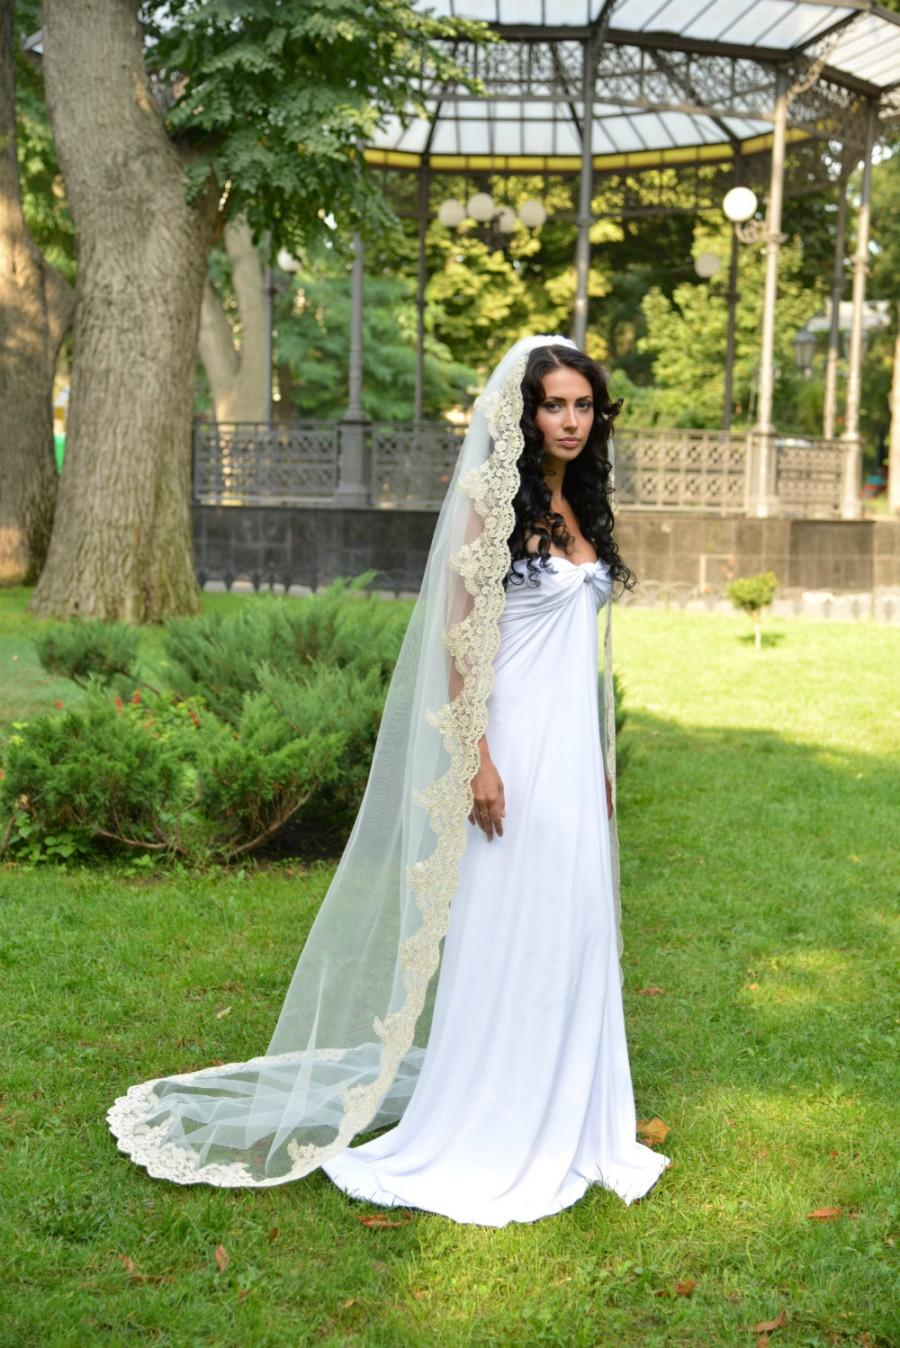 زفاف - Gold wedding veil, bridal veil gold, long wedding veil, gold wedding, soft wedding veil